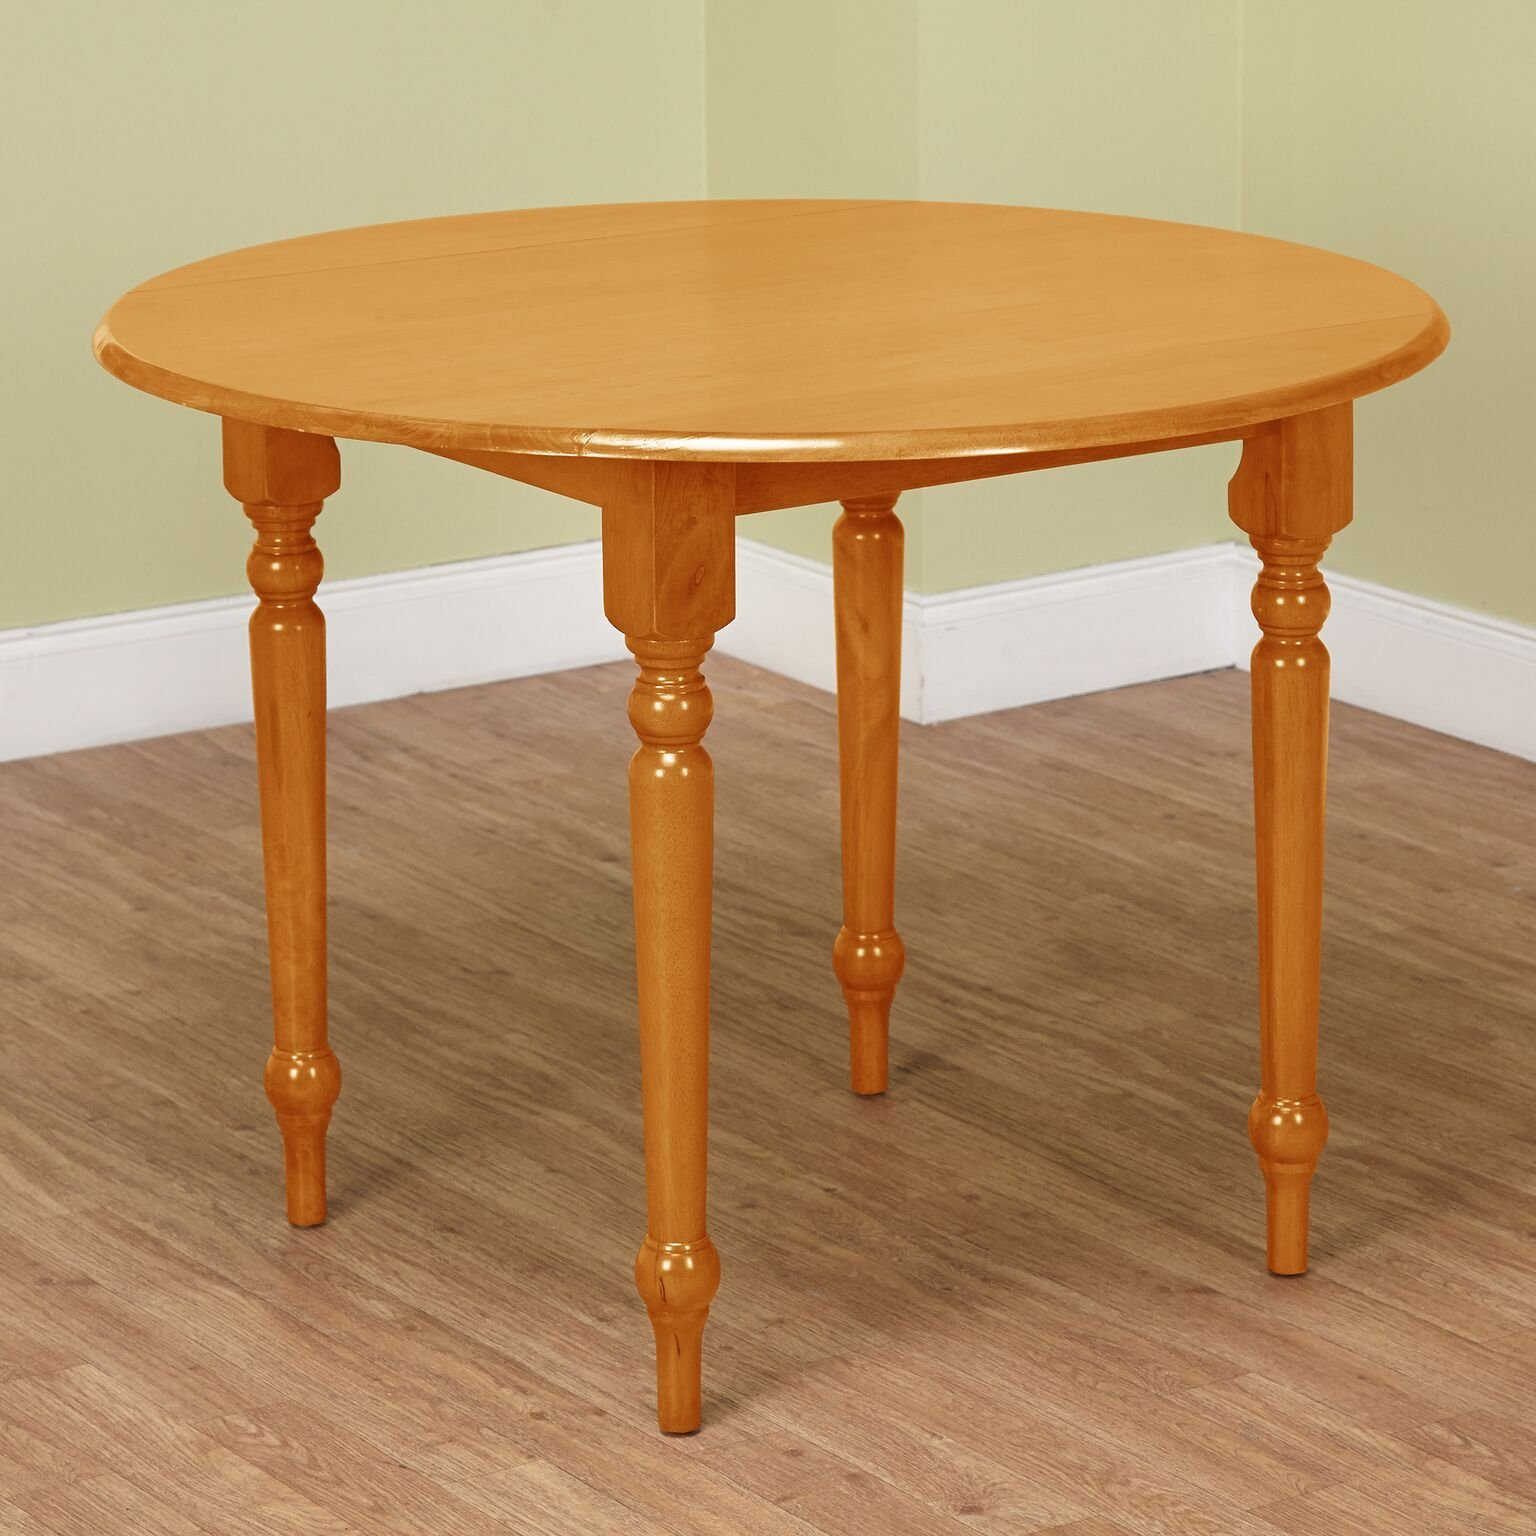 Target Marketing Systems 40-Inch Round Drop Leaf Table with Turned Spindle Legs, Oak by Target Marketing Systems